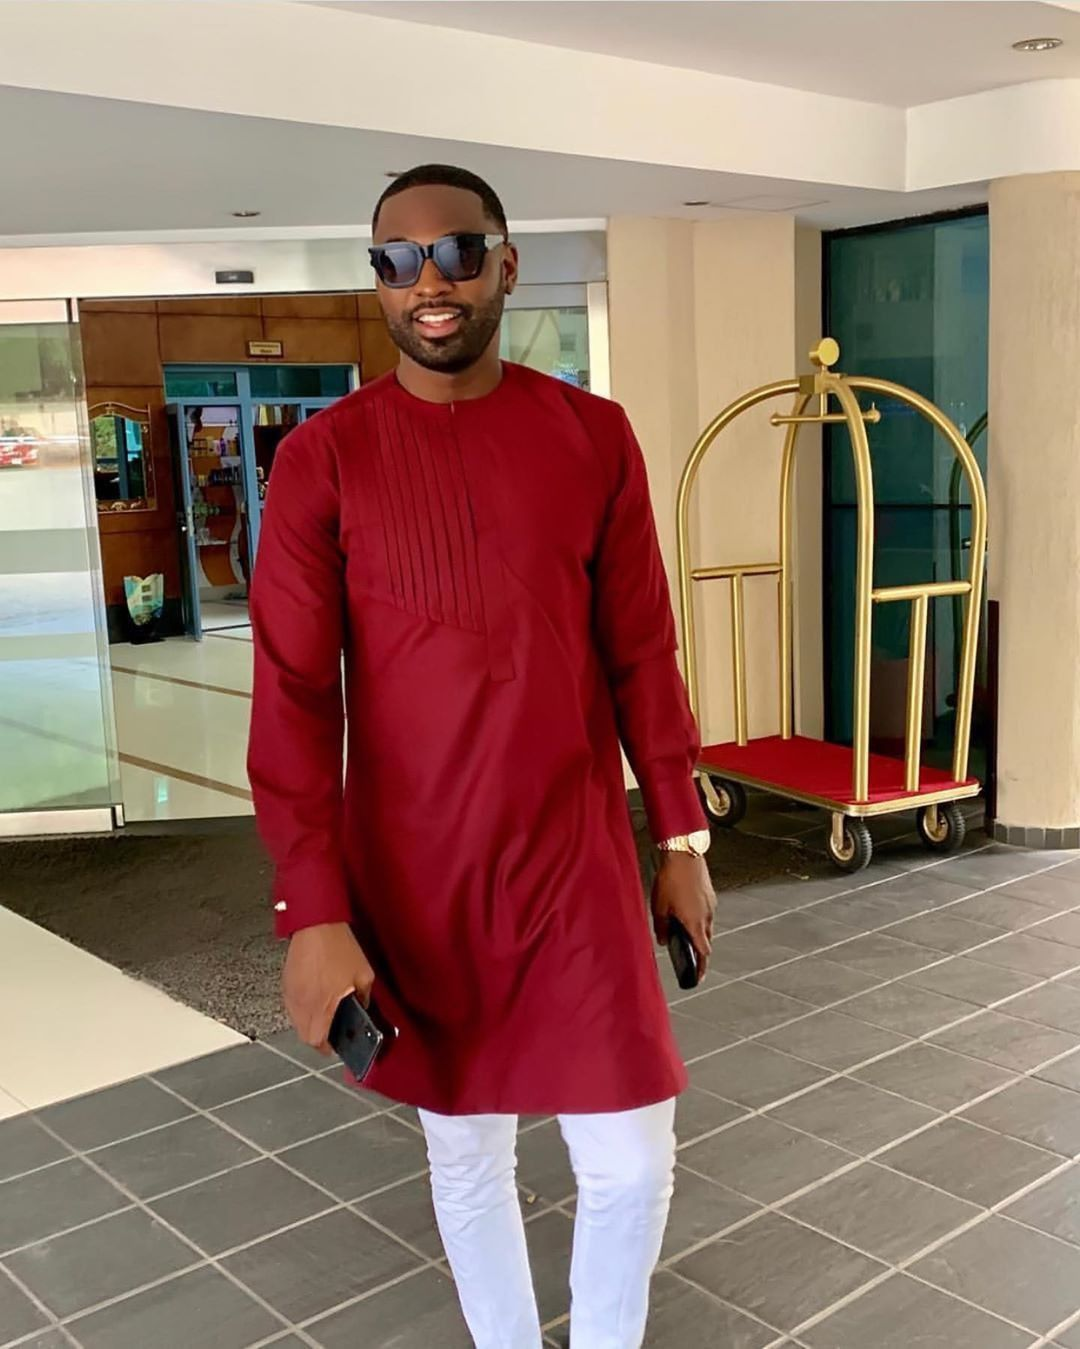 Latest Native Design For Guys 2020 Recommended Styles Couture Crib Nigerian Men Fashion African Shirts For Men African Clothing For Men